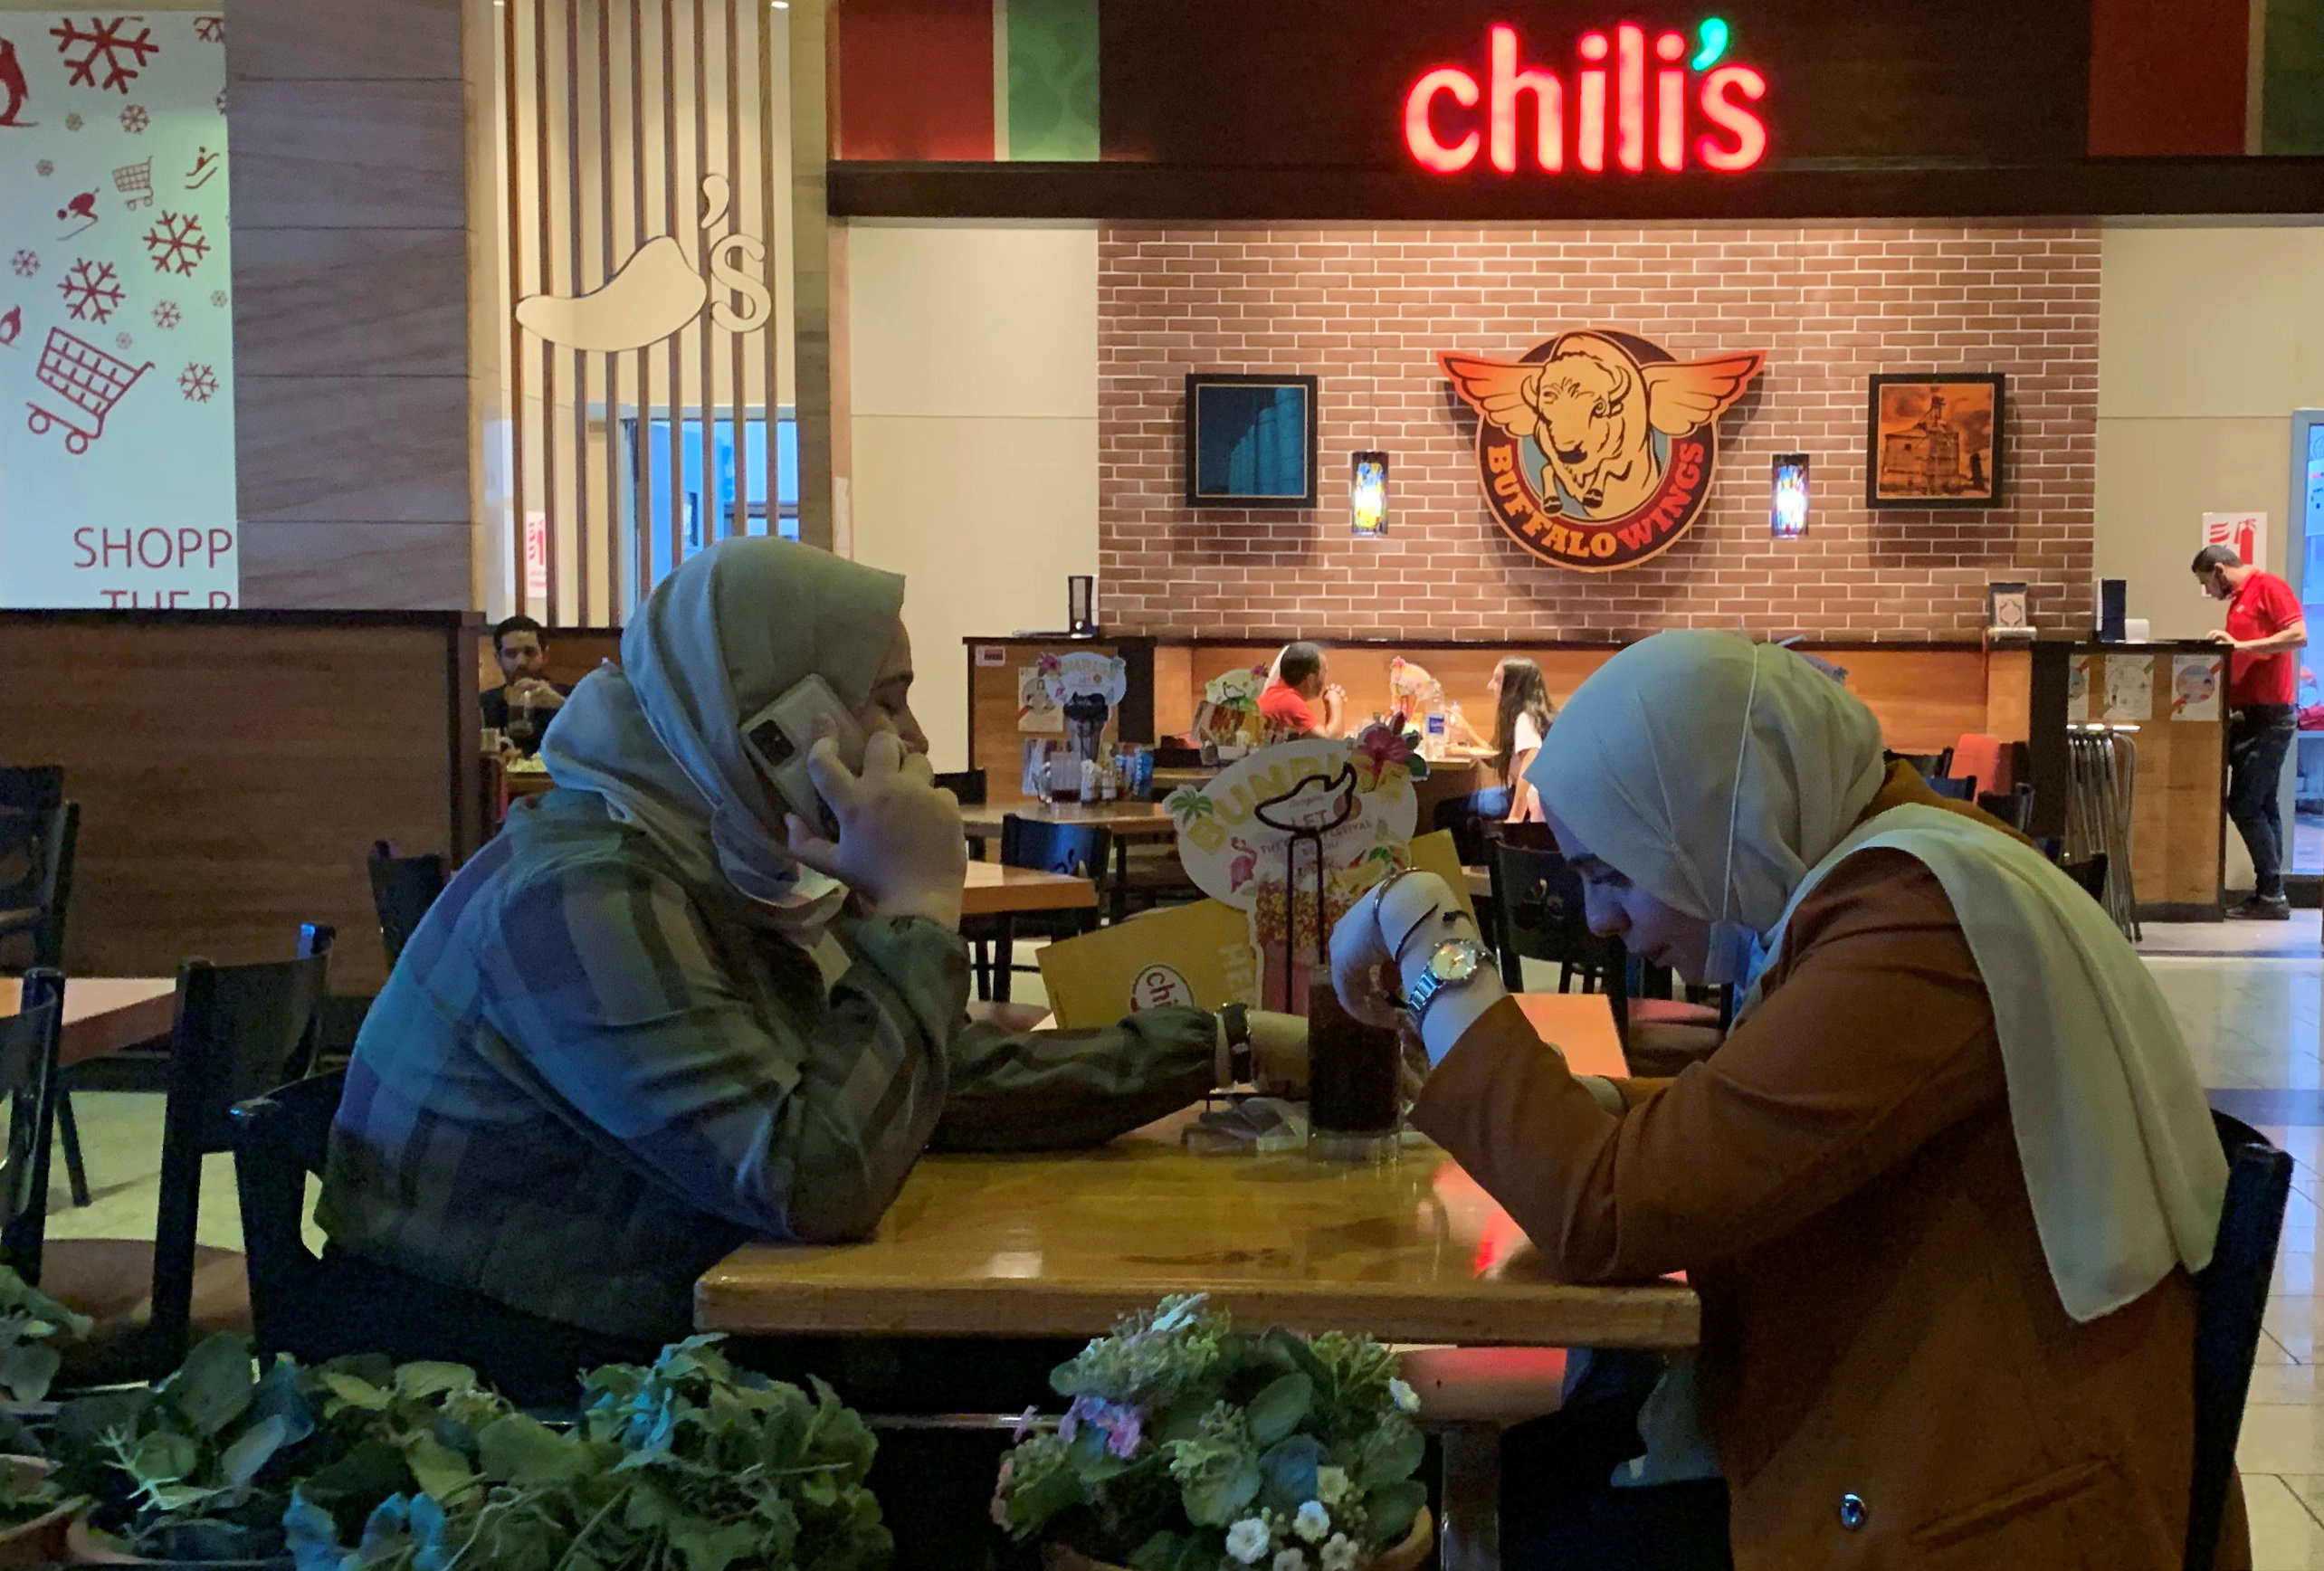 People dine at American restaurant Chili's, amid the coronavirus disease (COVID-19) pandemic at Mall of Egypt, known as